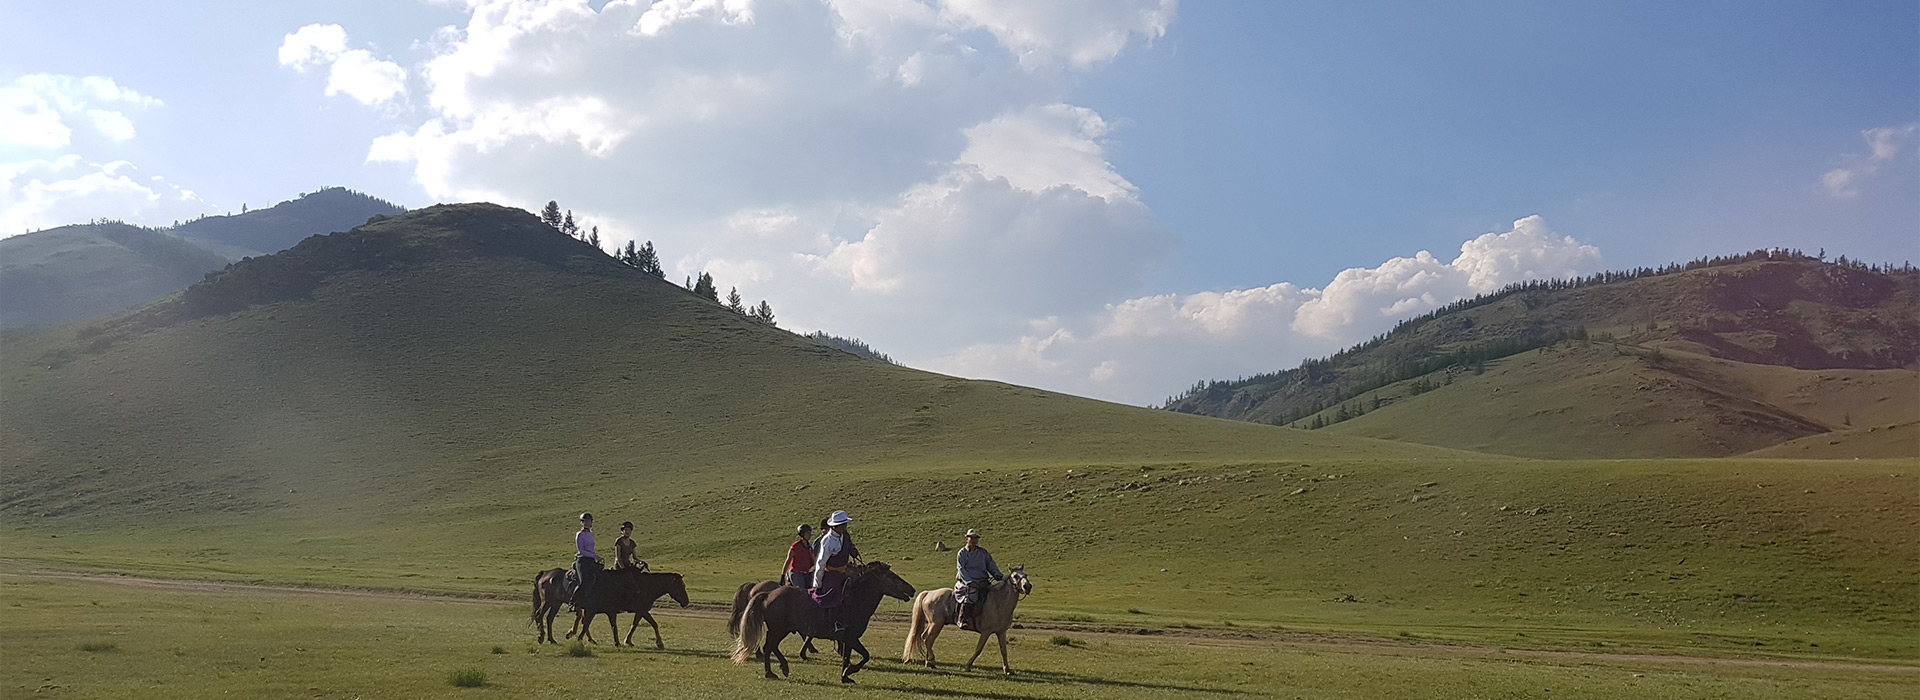 horseback-journeys-mongolia